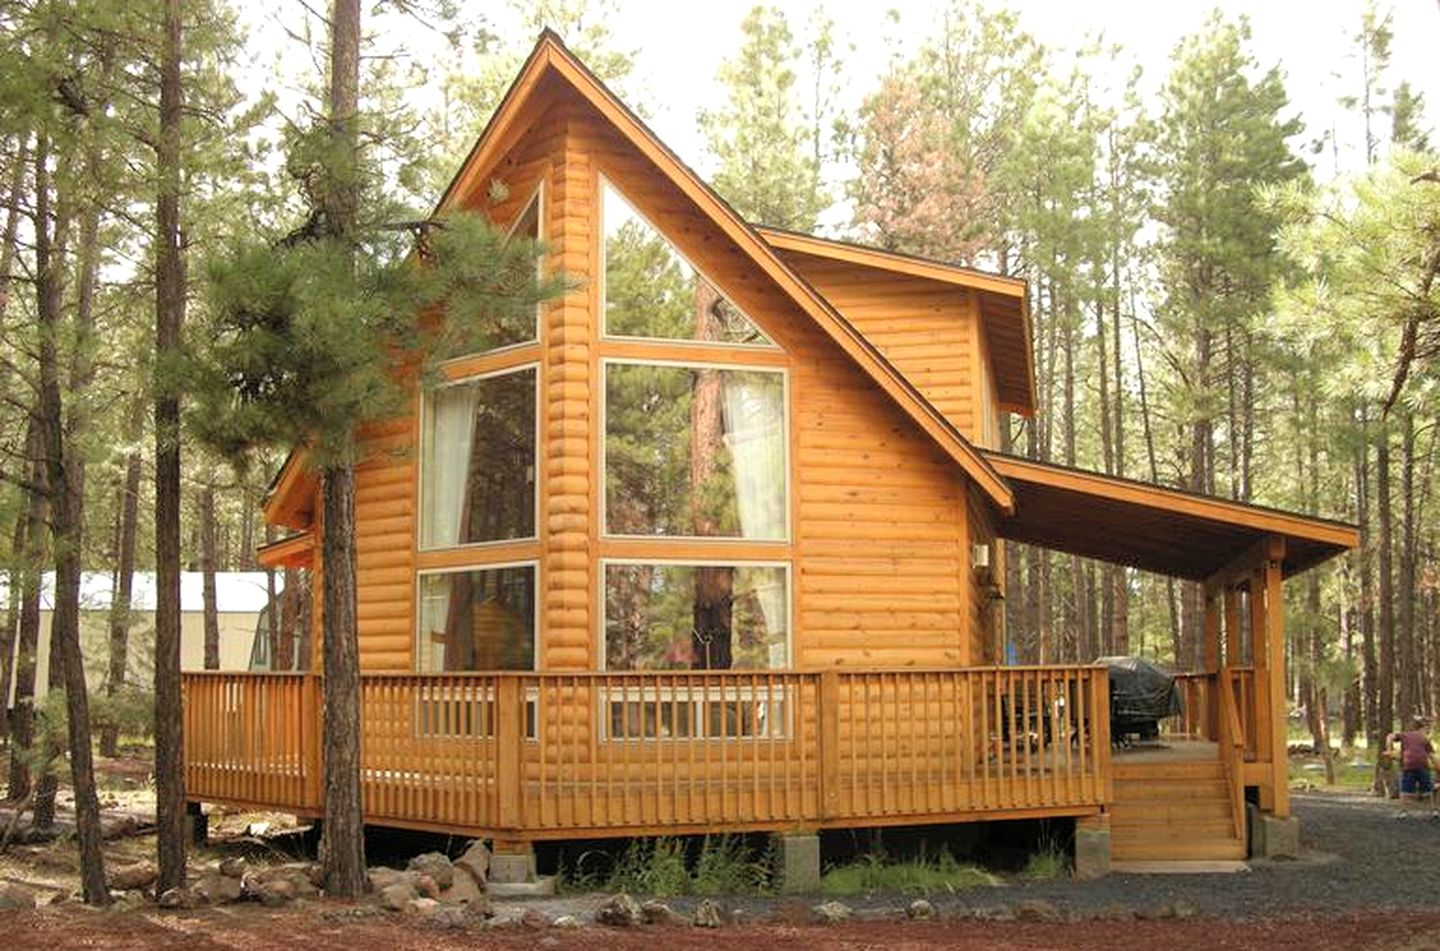 Idyllic Cabin Rental for families near the Grand Canyon (Williams, Arizona, United States)